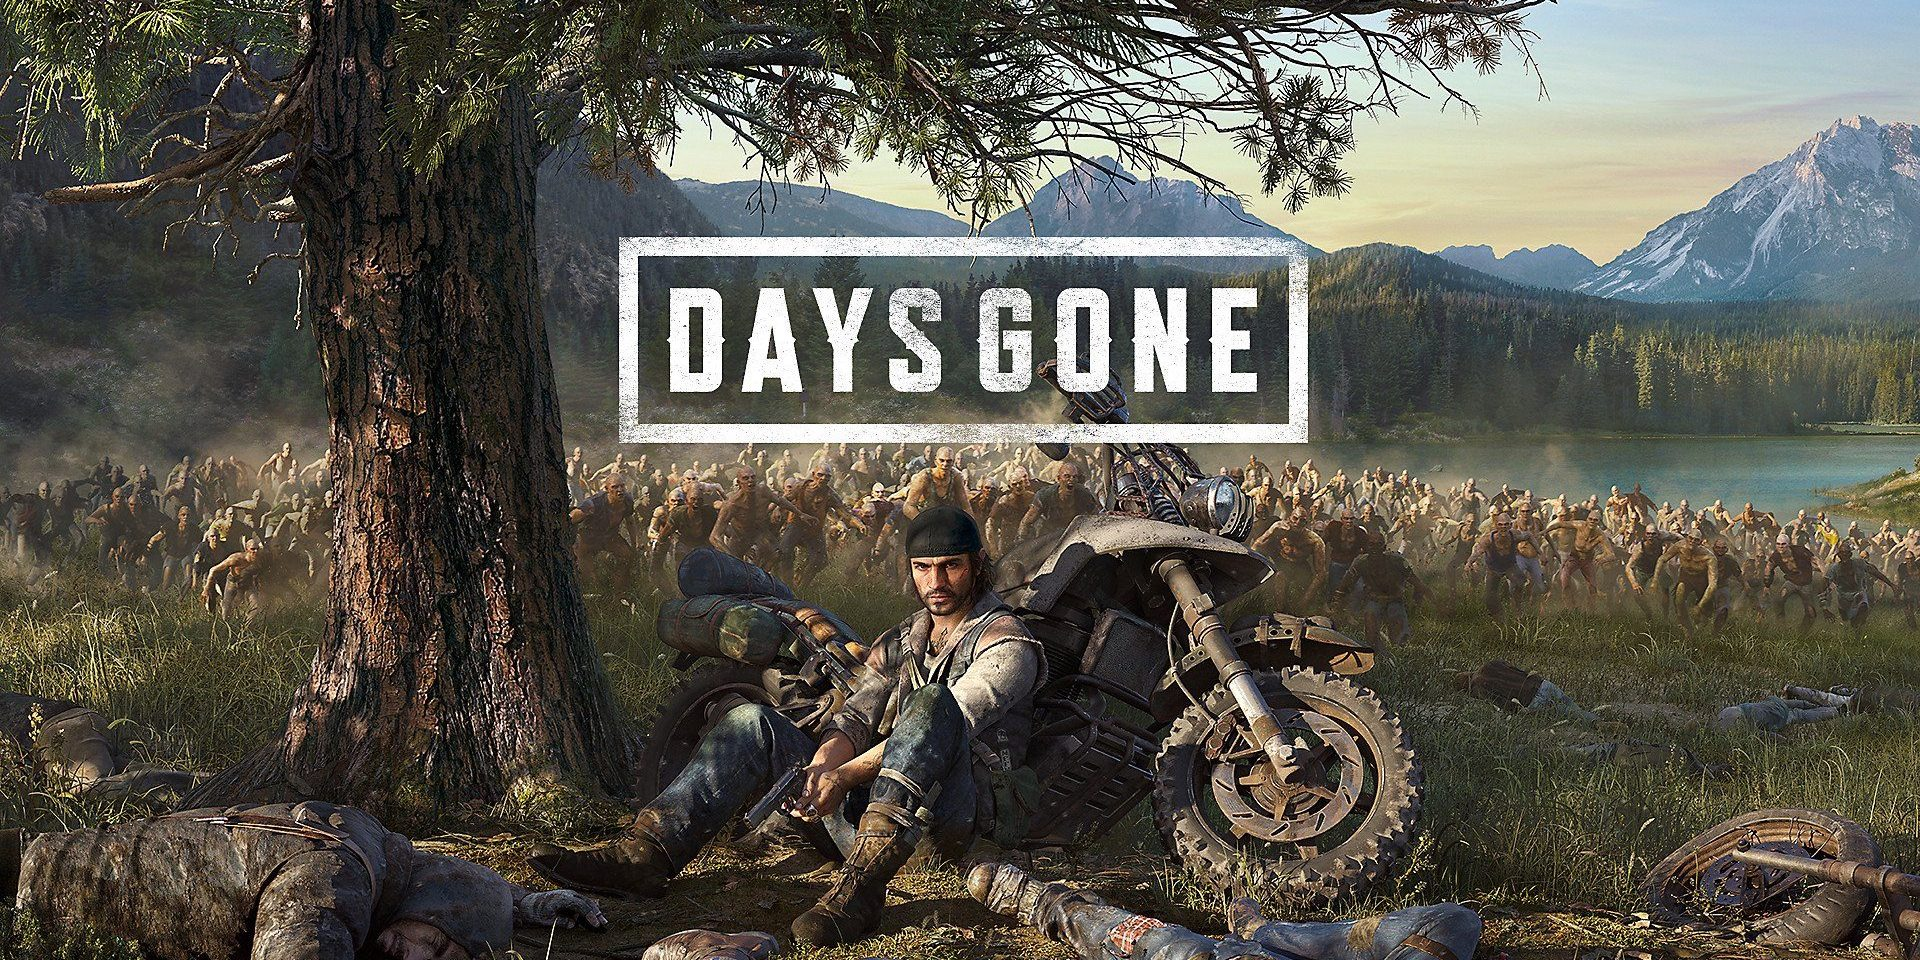 Today's Best Game Deals: Days Gone $20, Far Cry 5 $15, more - 9to5Toys